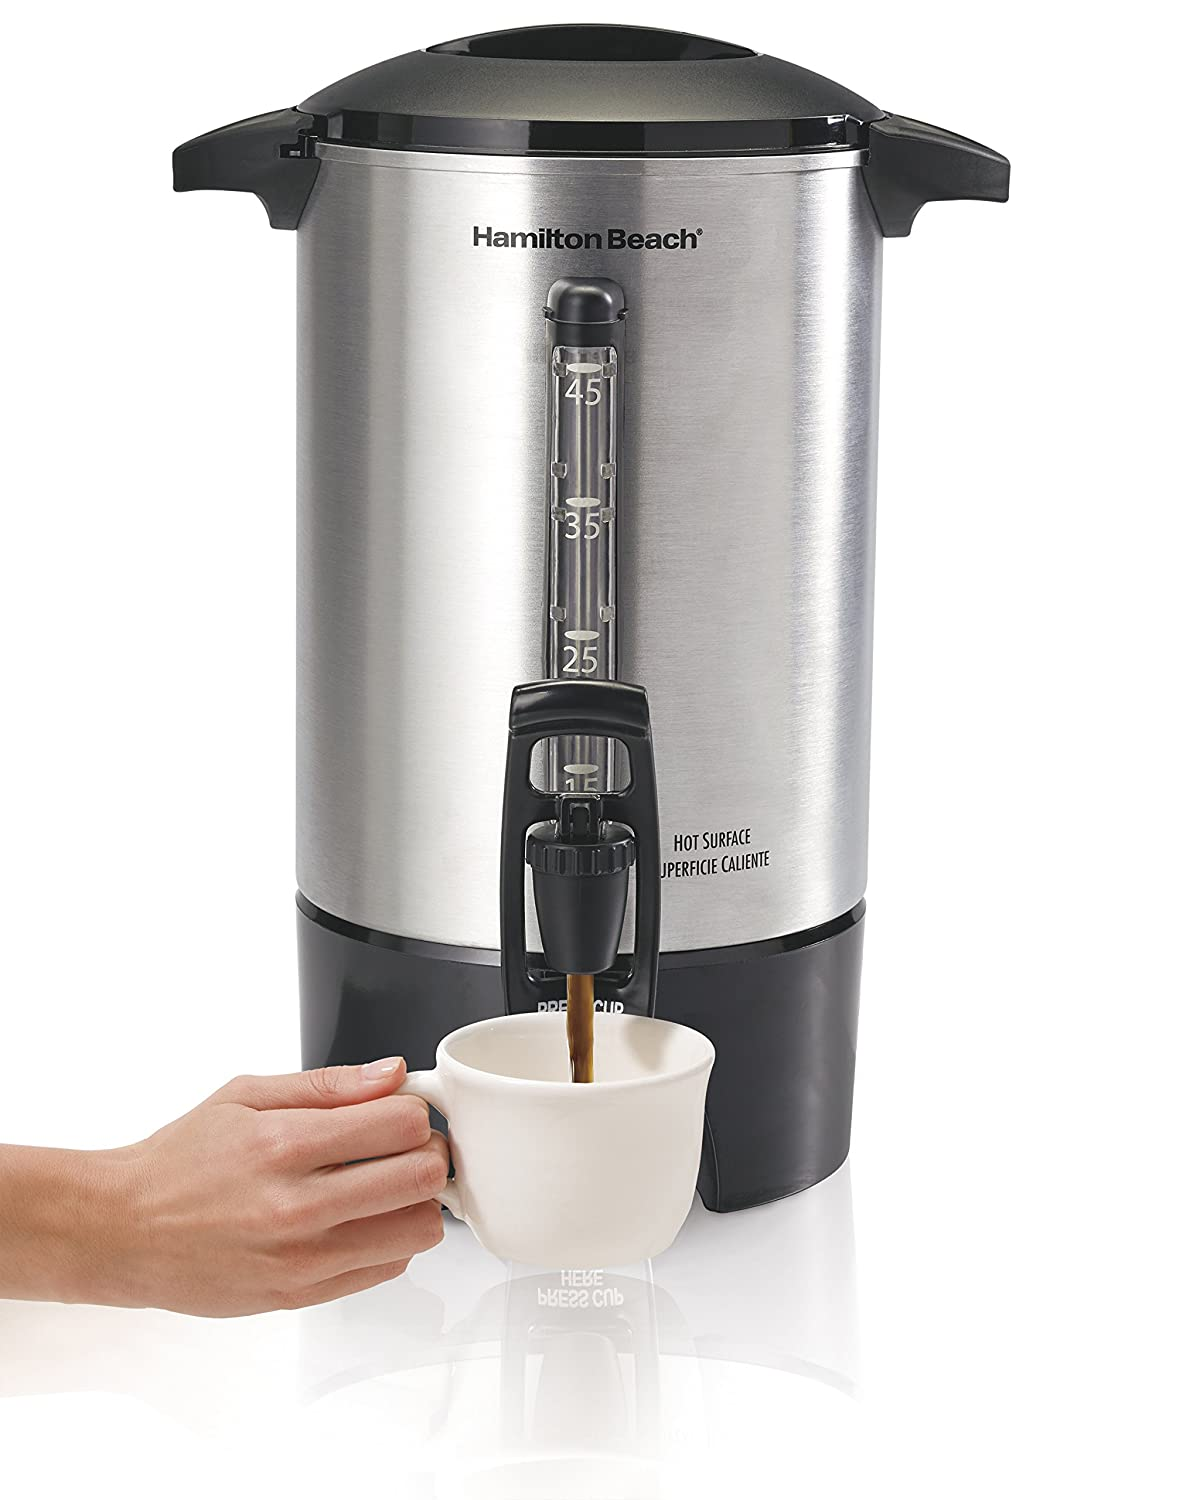 Hamilton Beach 40519 Coffee Urn 45 Cups Silver